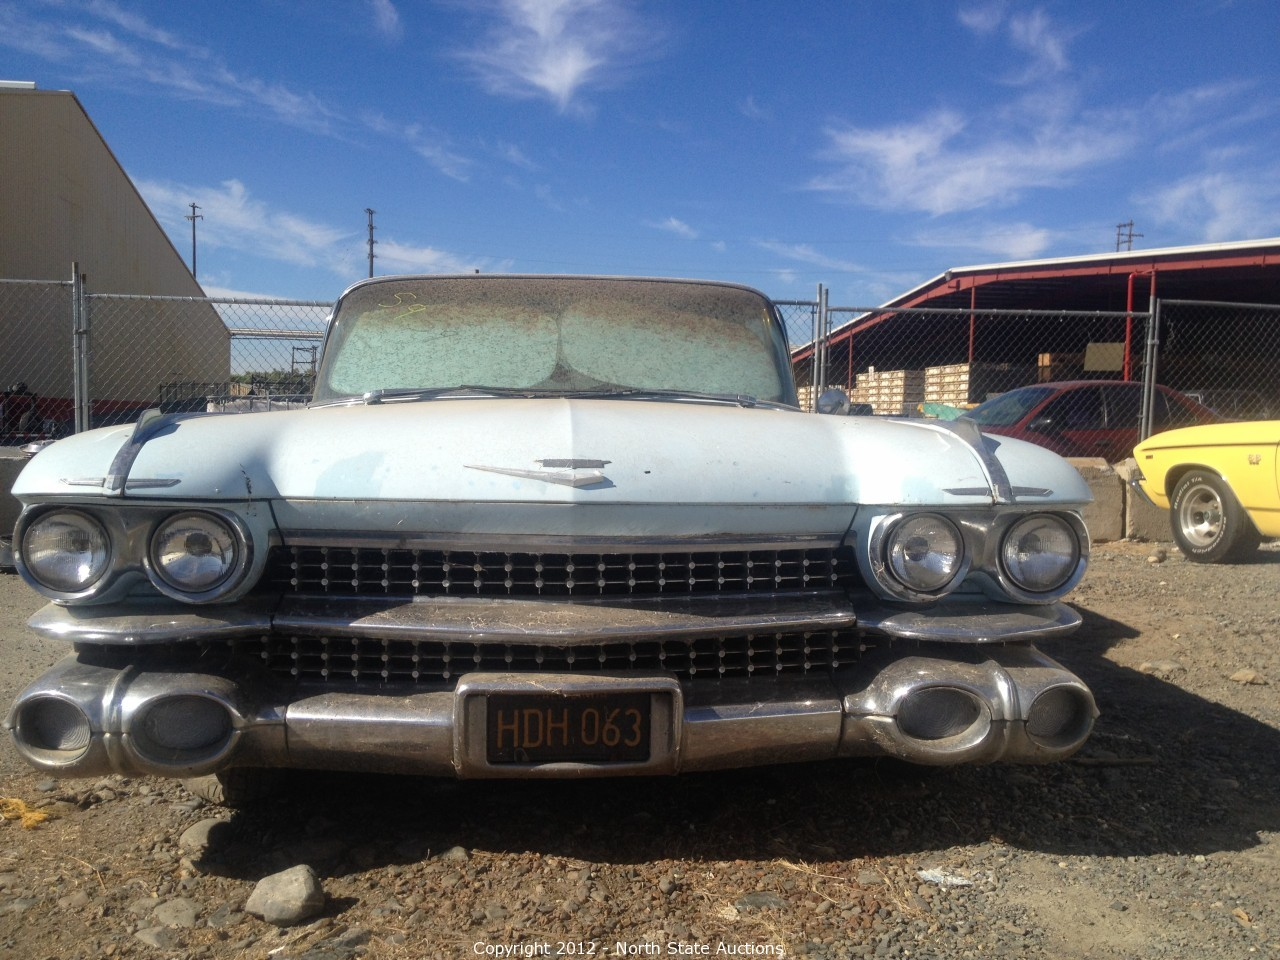 Antique Car, Barn Finds, South-forty Treasures and Automotive Hoarding Auction, Oh! and a Couple of Vintage Boats